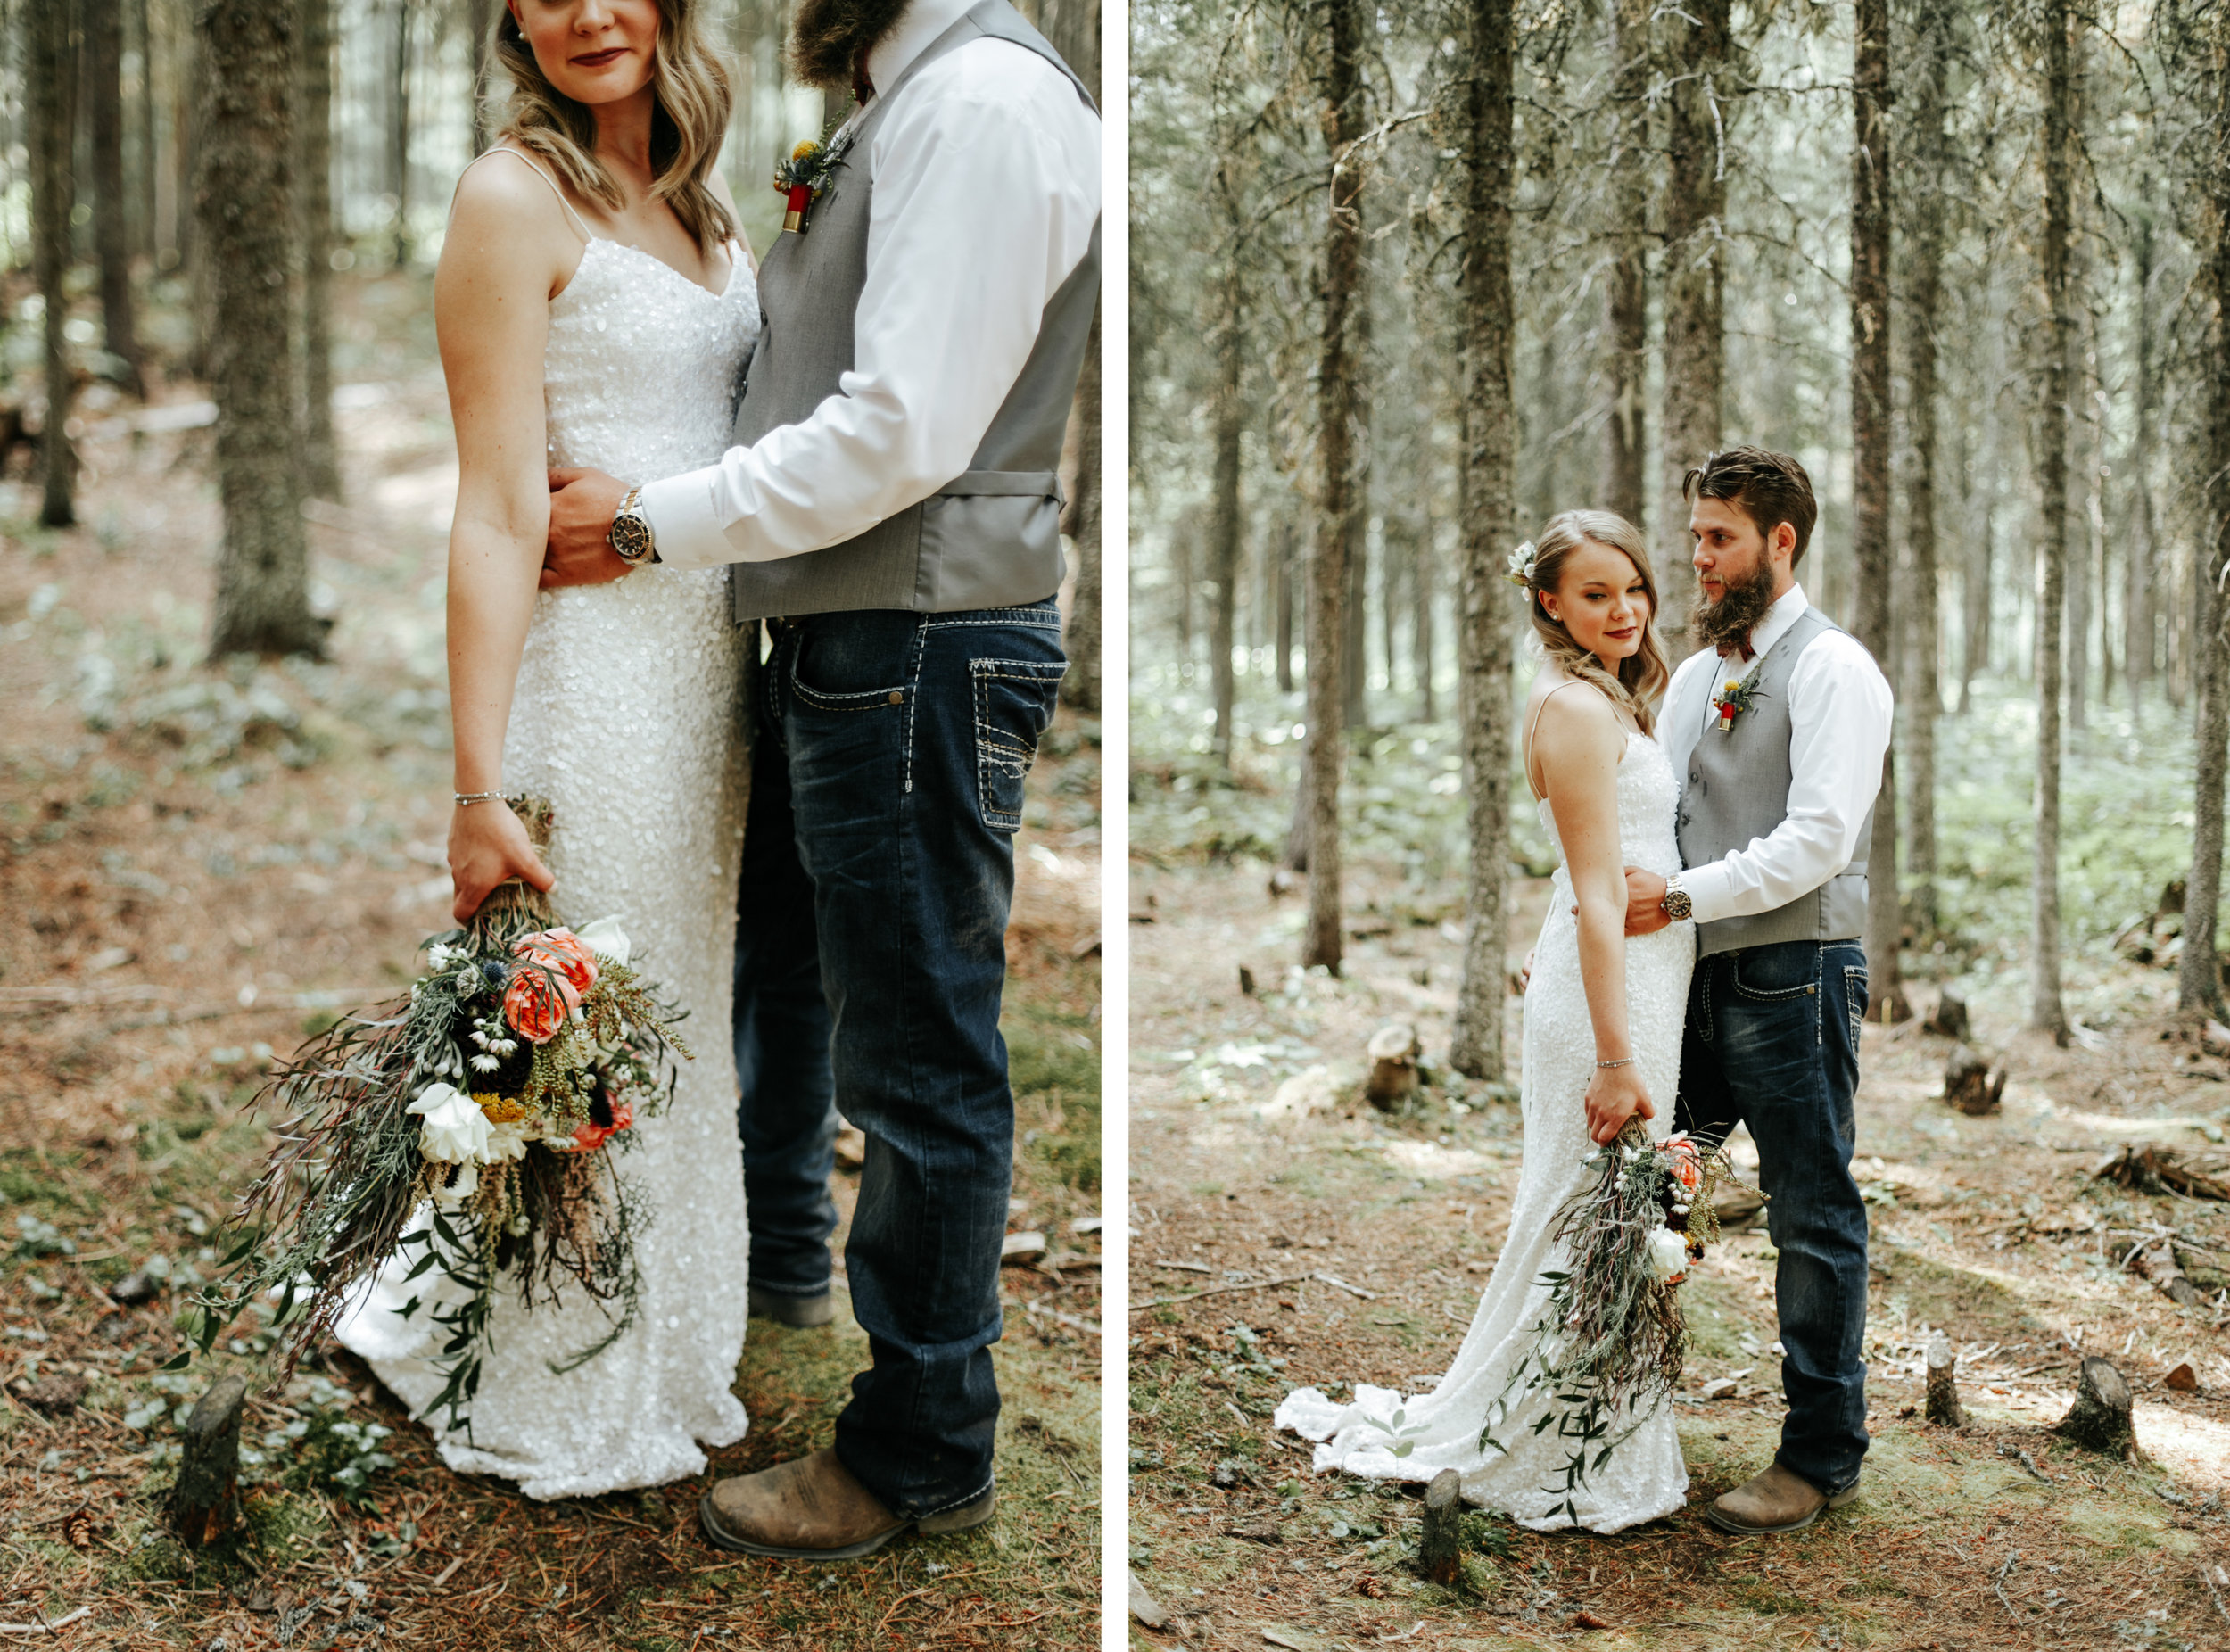 castle-mountain-wedding-photographer-love-and-be-loved-photography-lethbridge-pincher-creek-crowsnest-pass-yannick-rylee-photo-image-picture-145.jpg